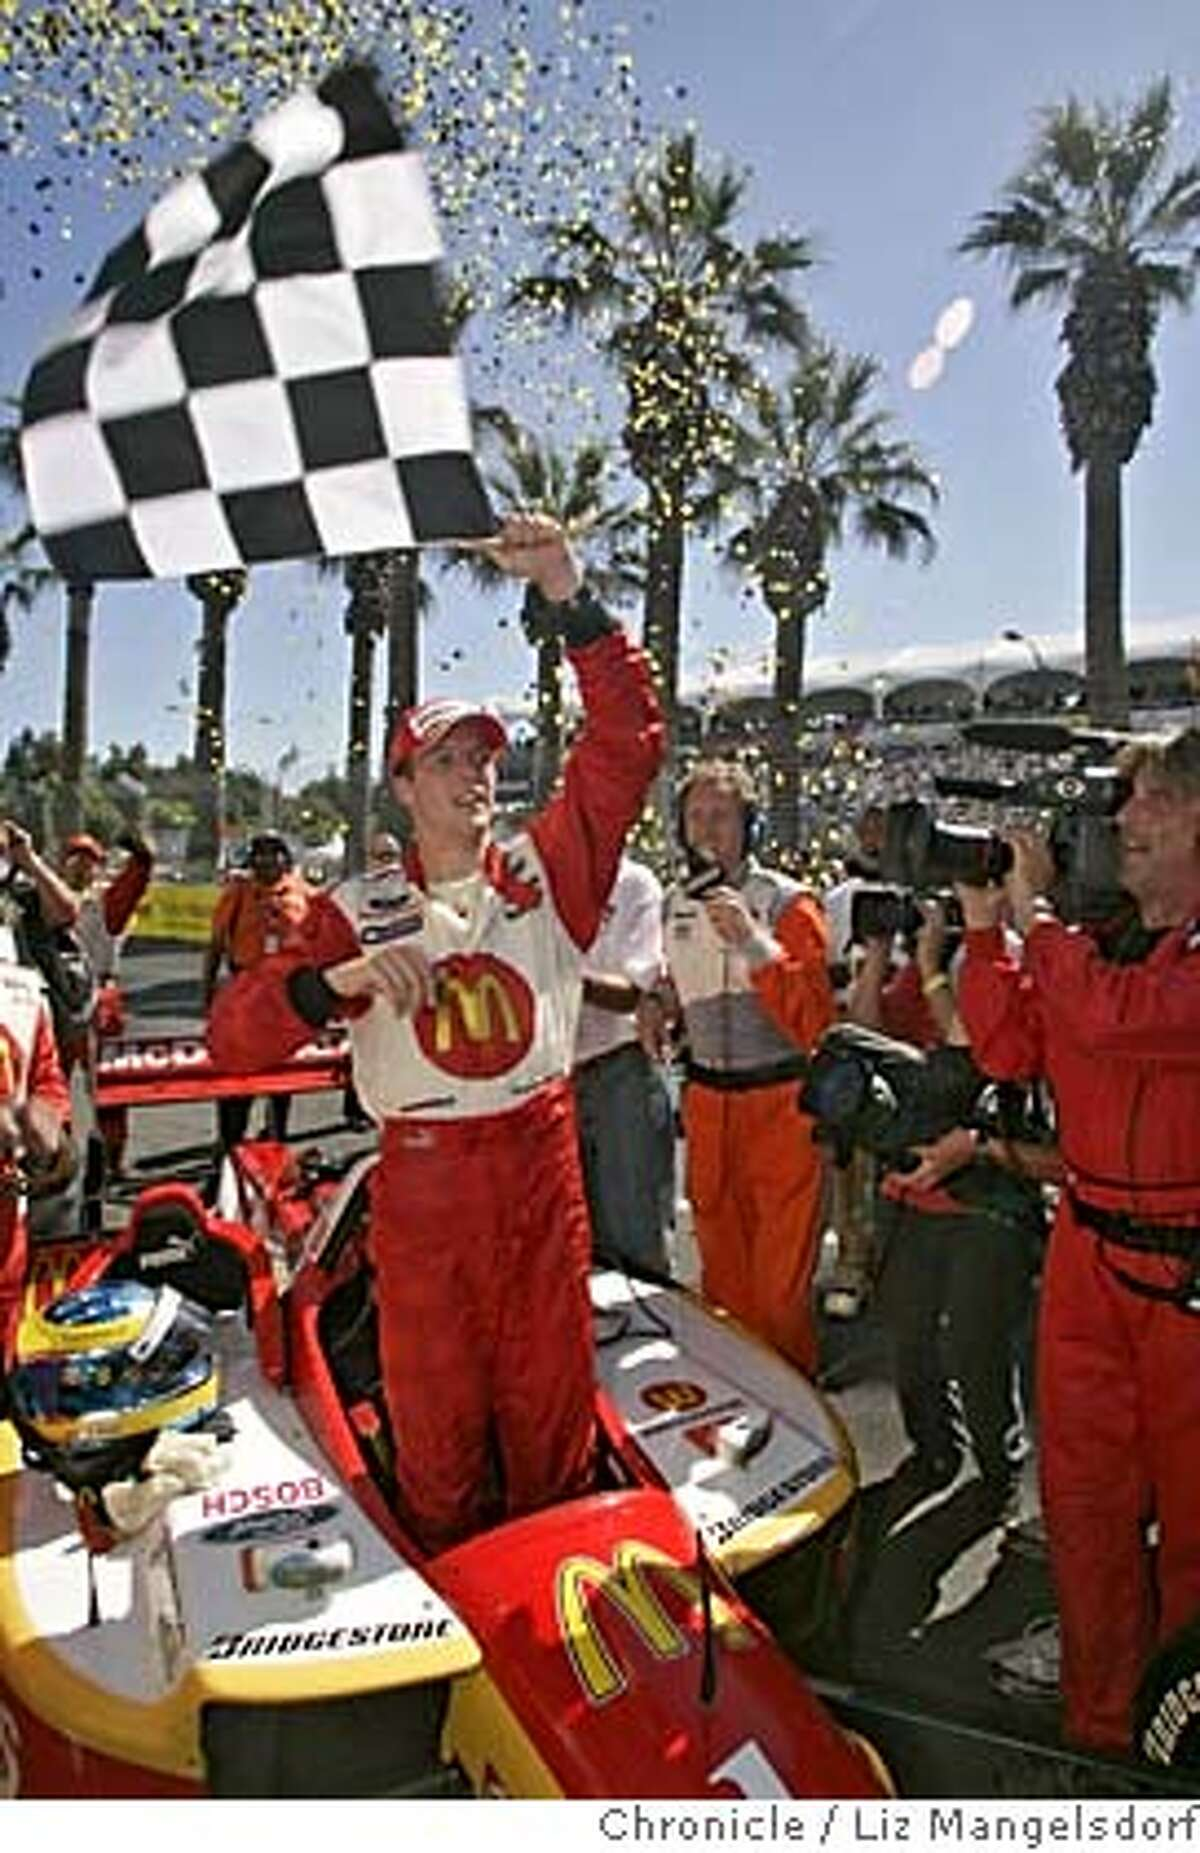 champ01_356_lm.JPG Event on 7/31/05 in San Jose. Winner Sebastien Bourdais waves a flag after winning the Grand Prix of San Jose. The Taylor Woodrow Grand Prix of San Jose, run through the streets of downtown San Jose. Liz Mangelsdorf / The Chronicle MANDATORY CREDIT FOR PHOTOG AND SF CHRONICLE/ -MAGS OUT